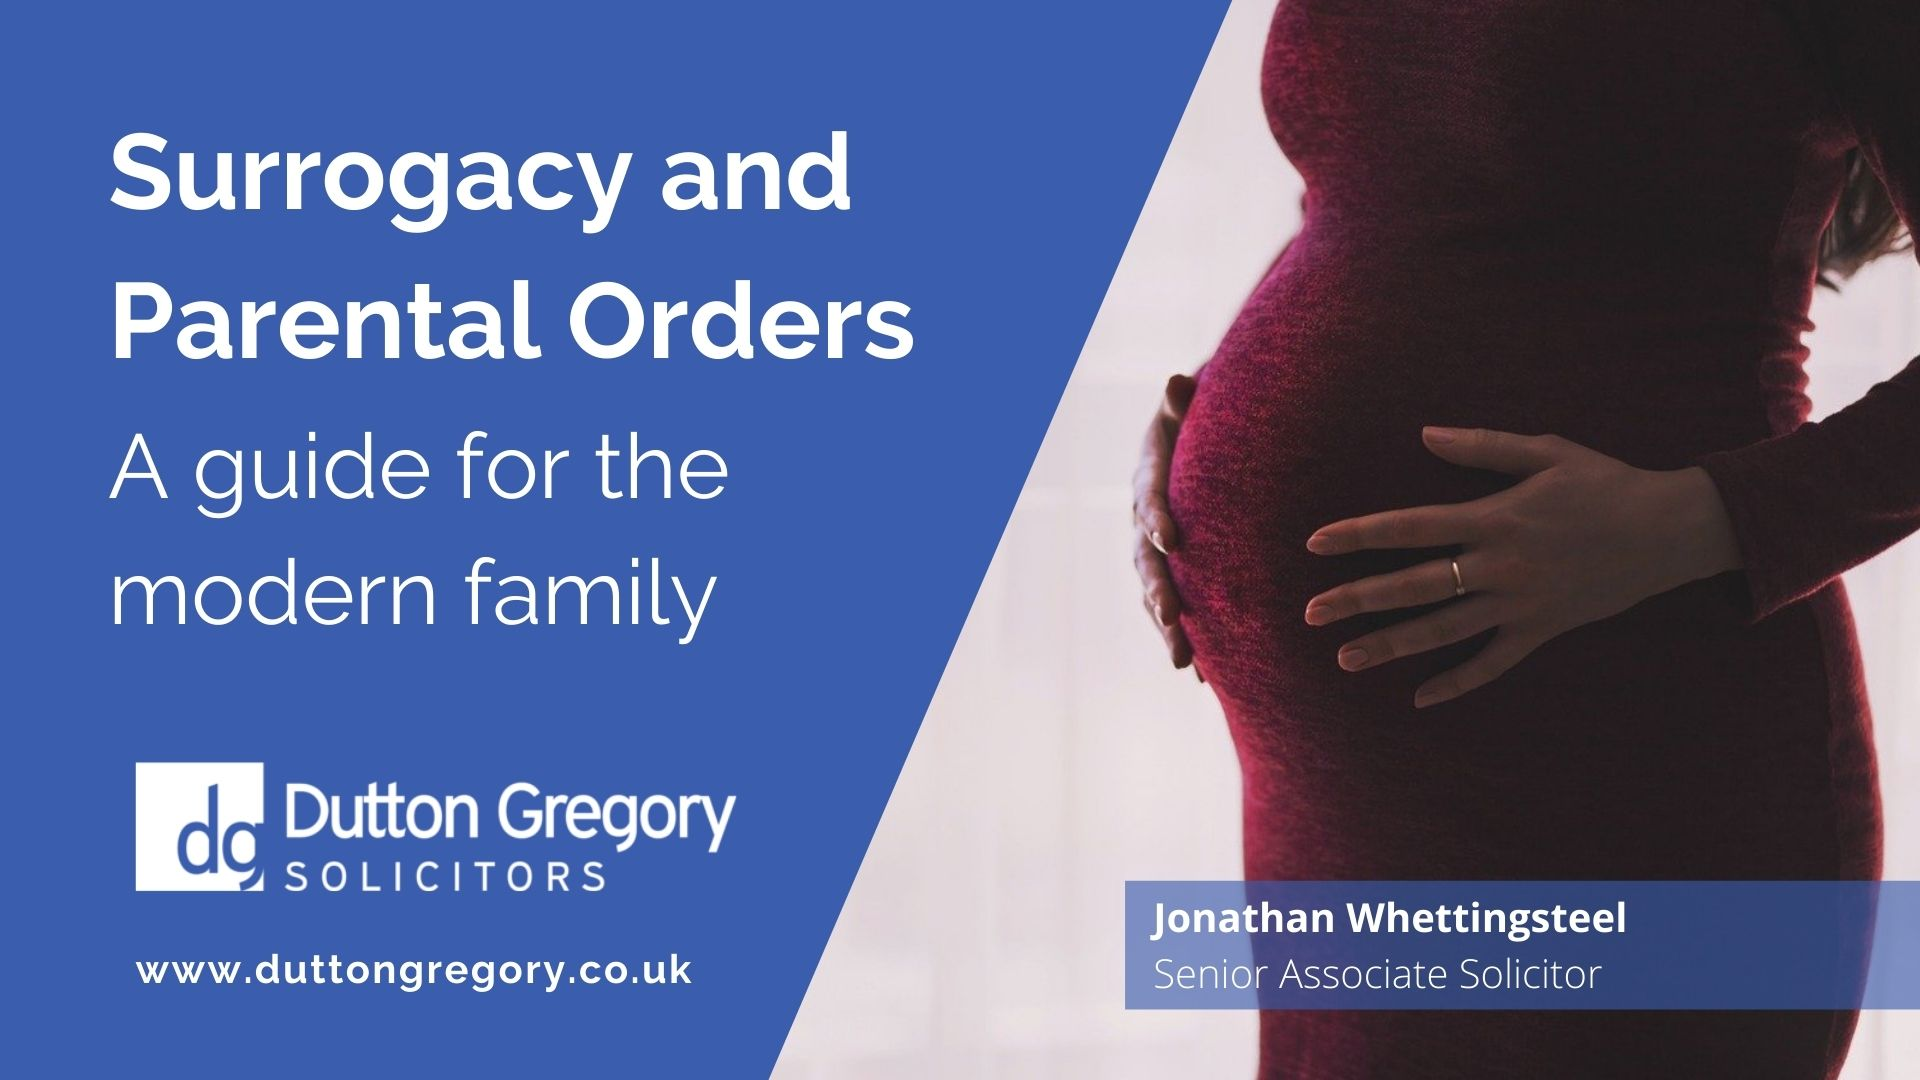 Surrogacy and Parental Orders - A Guide for the Modern Family